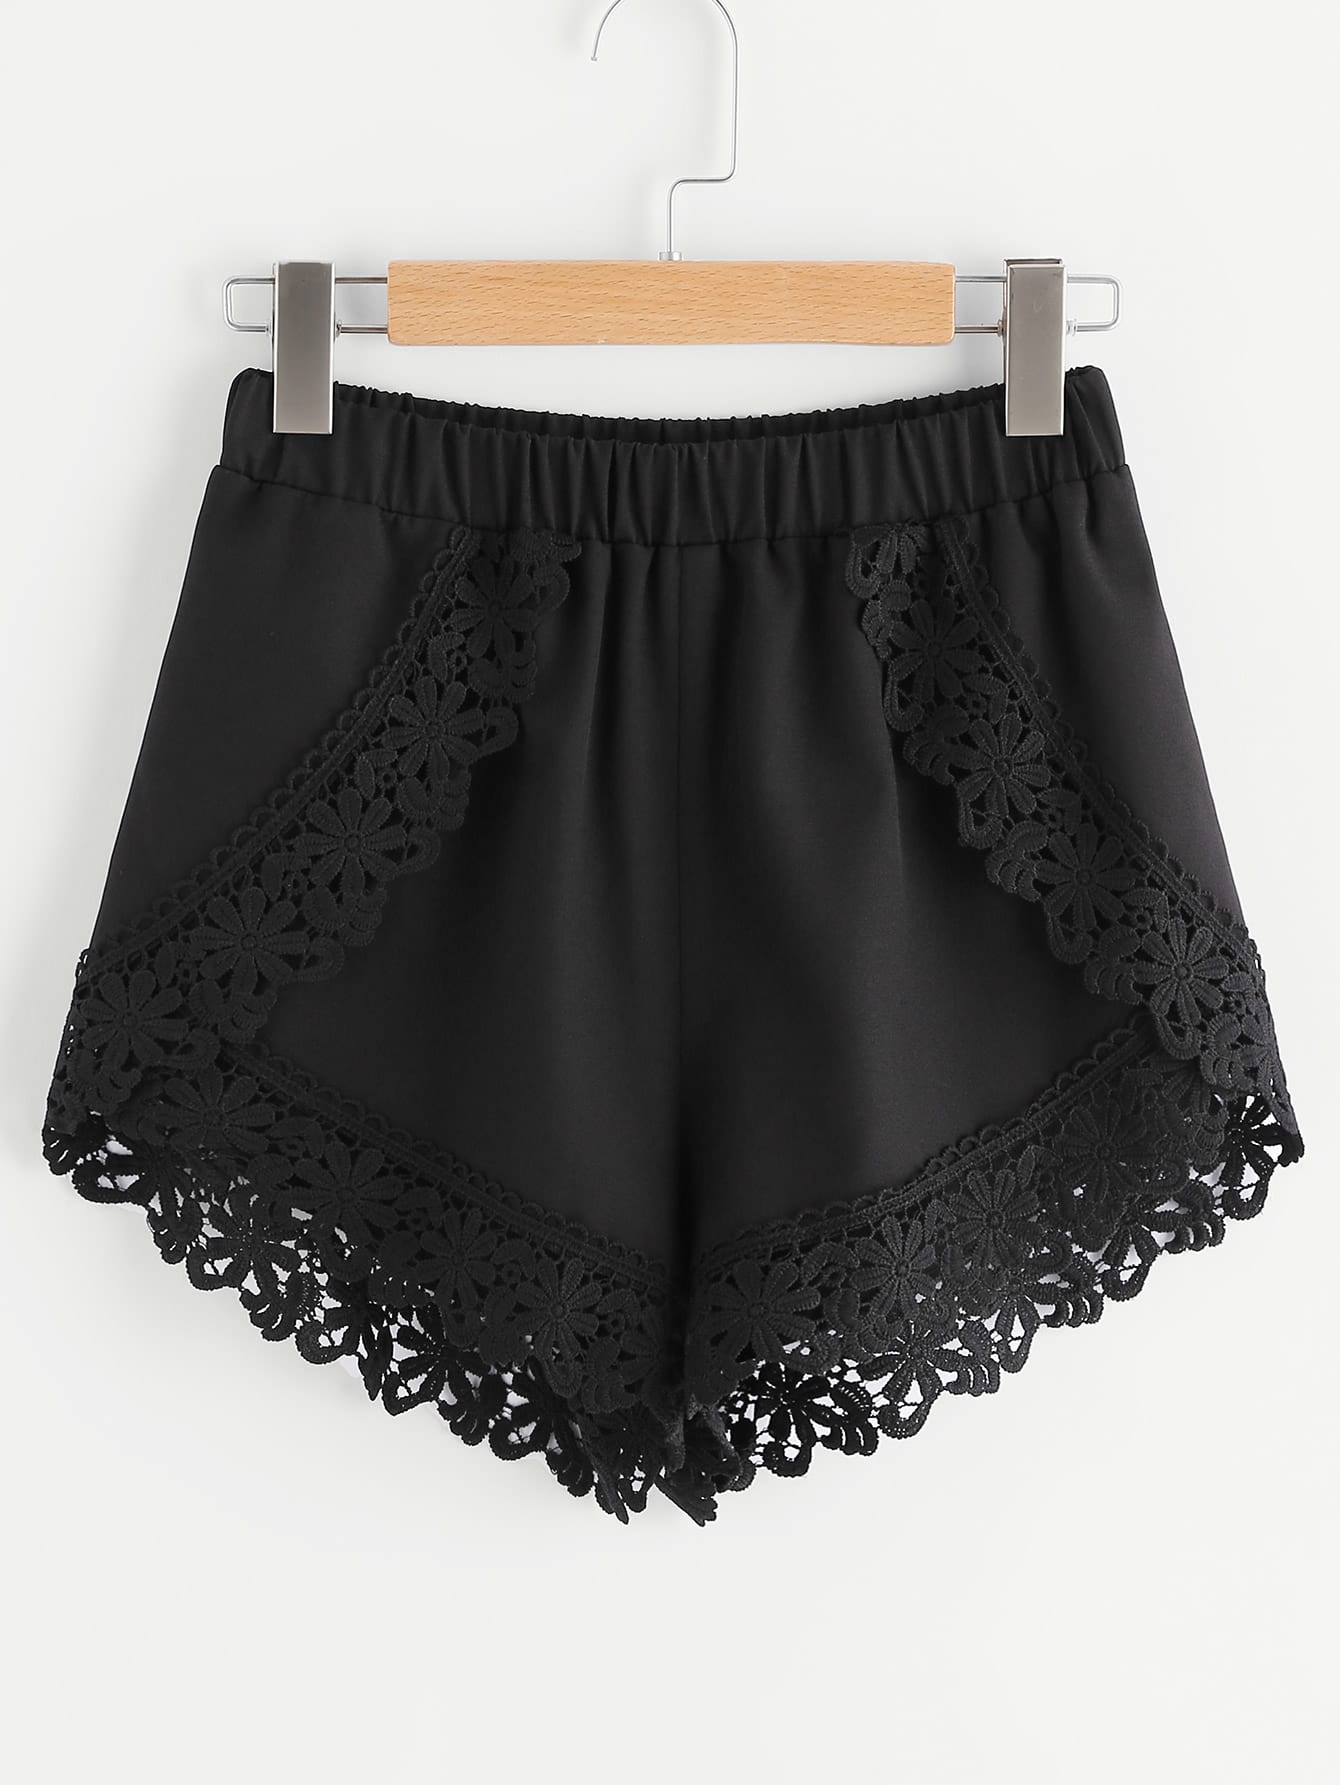 Elastic Waist Floral Lace Trim Wrap Shorts bohemian elastic waist lace spliced floral print shorts for women